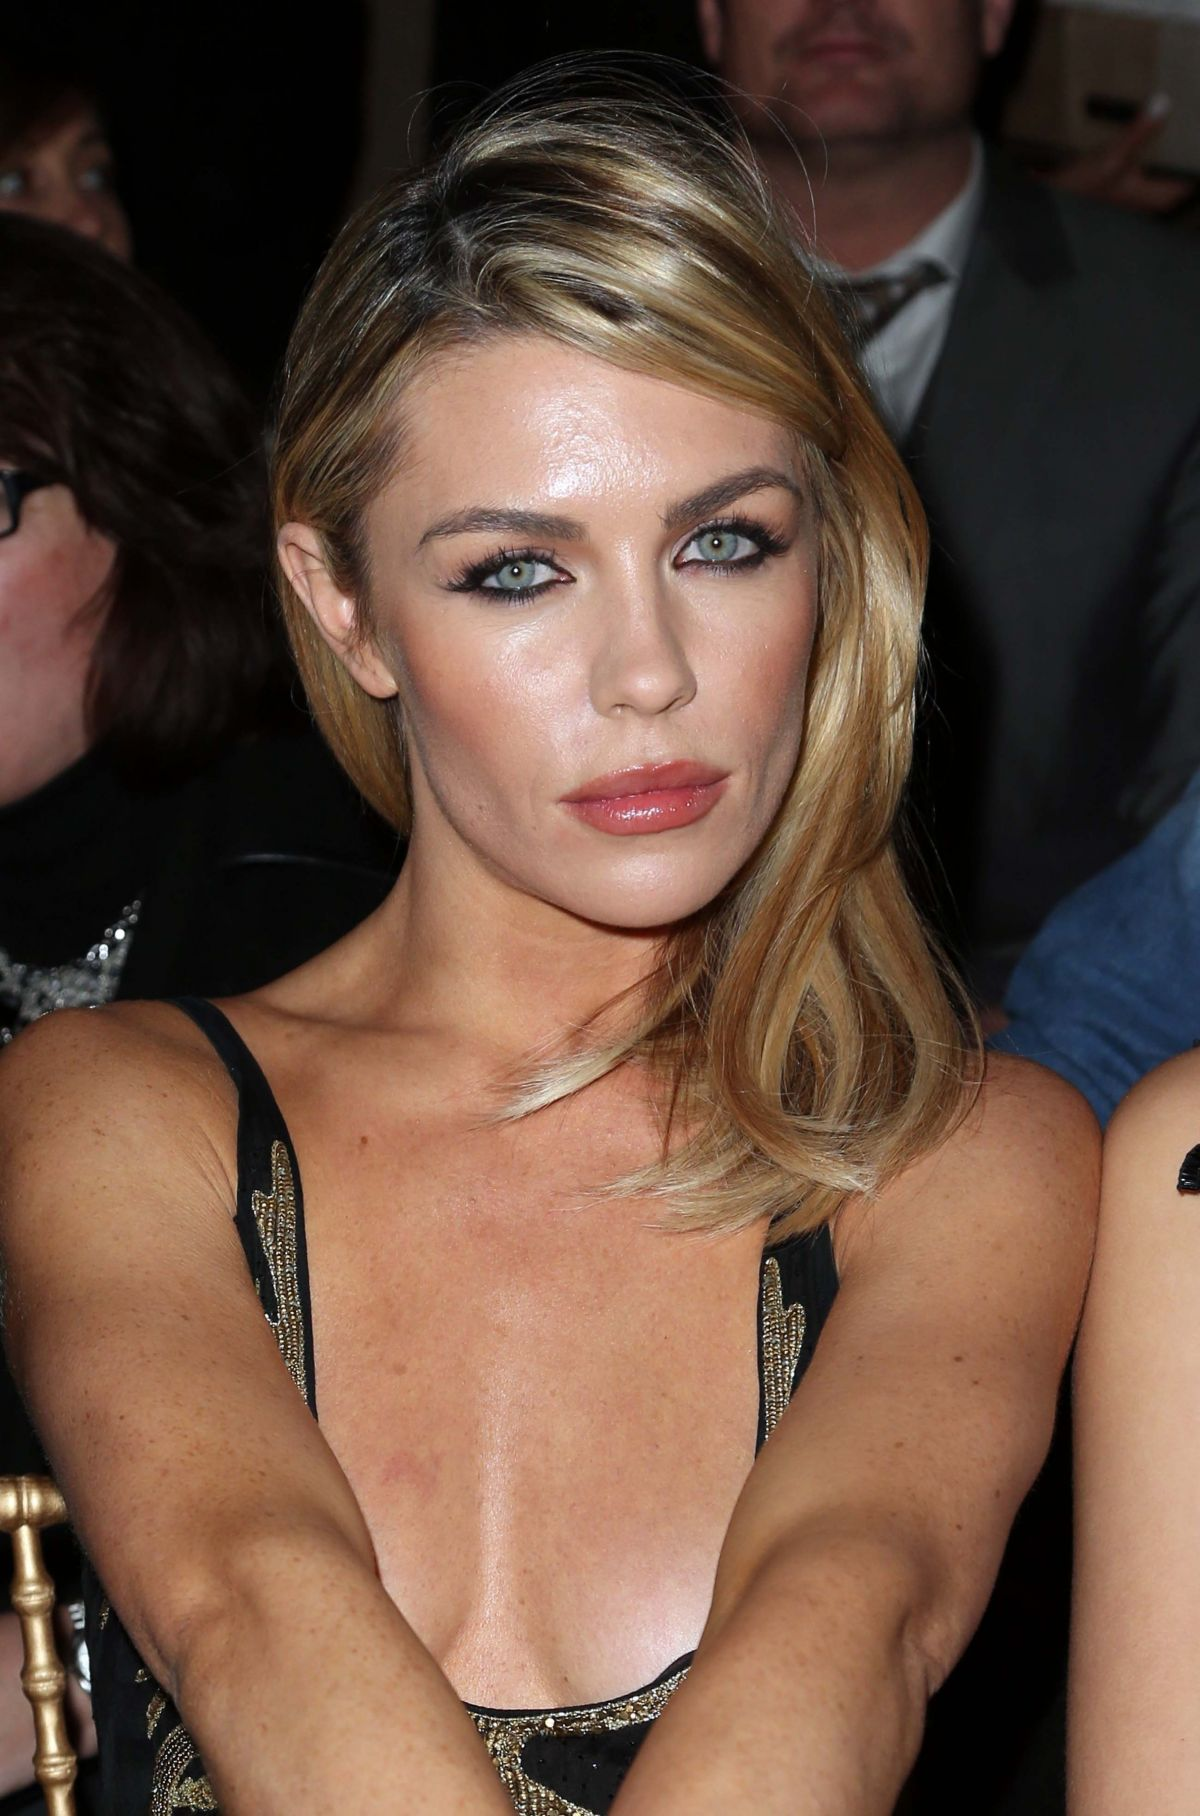 ABIGAIL ABBEY CLANCY at Julien Macdonald